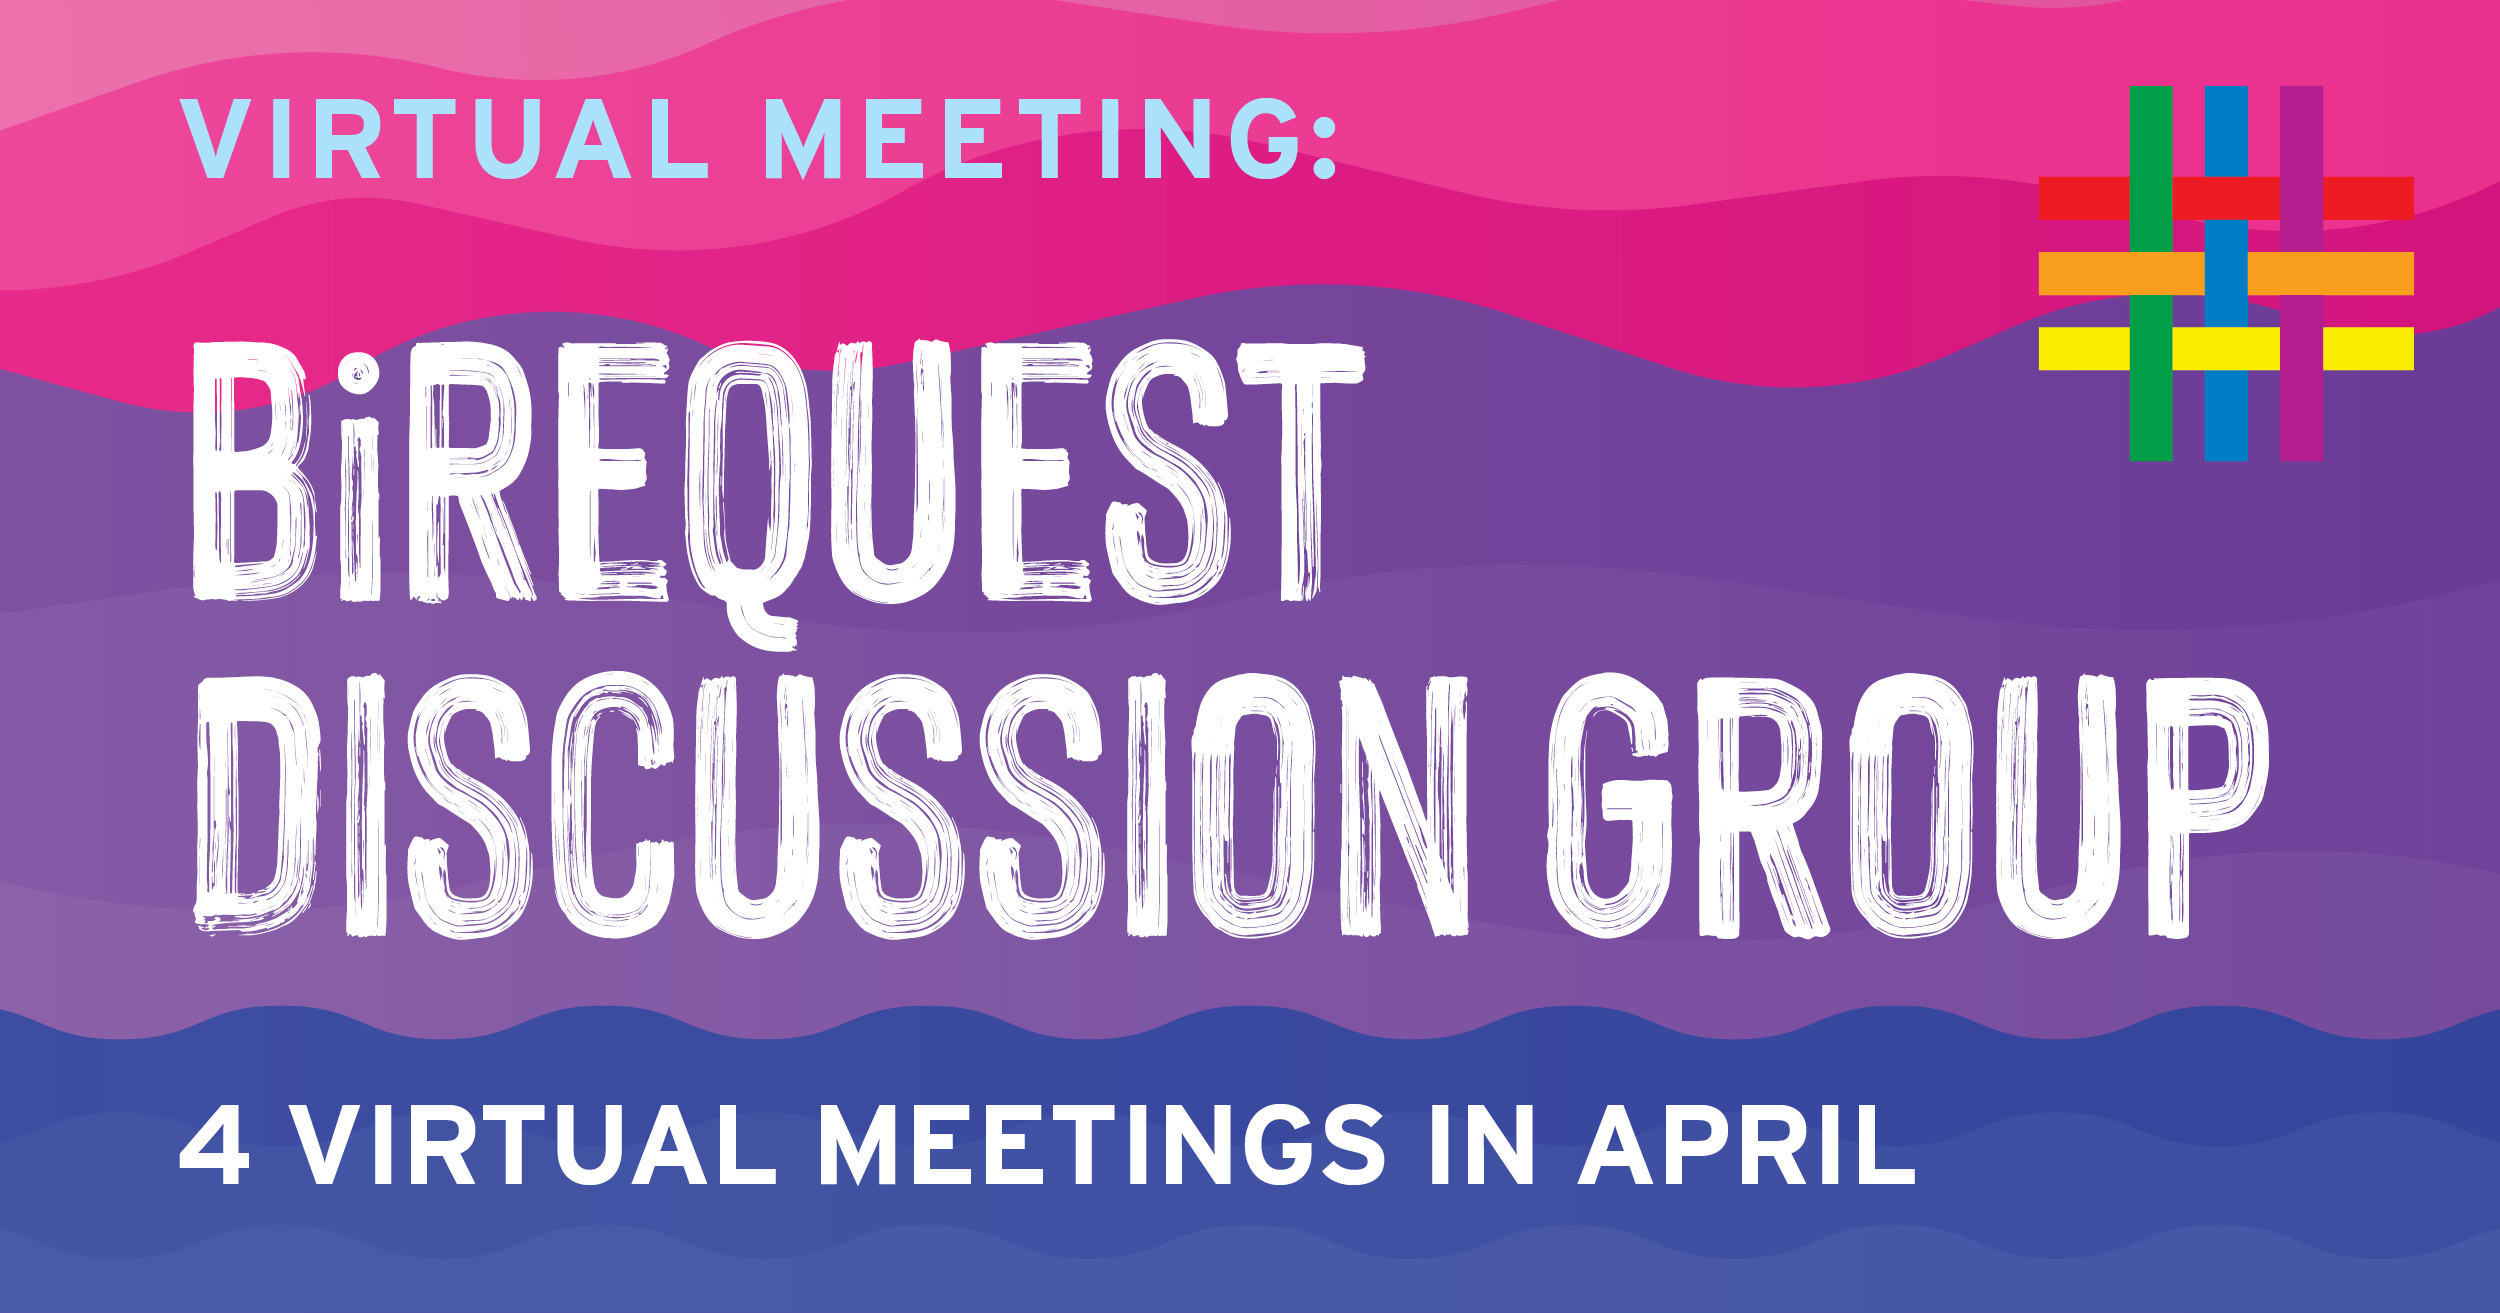 BiRequest Discussion Group at Brooklyn Community Pride Center